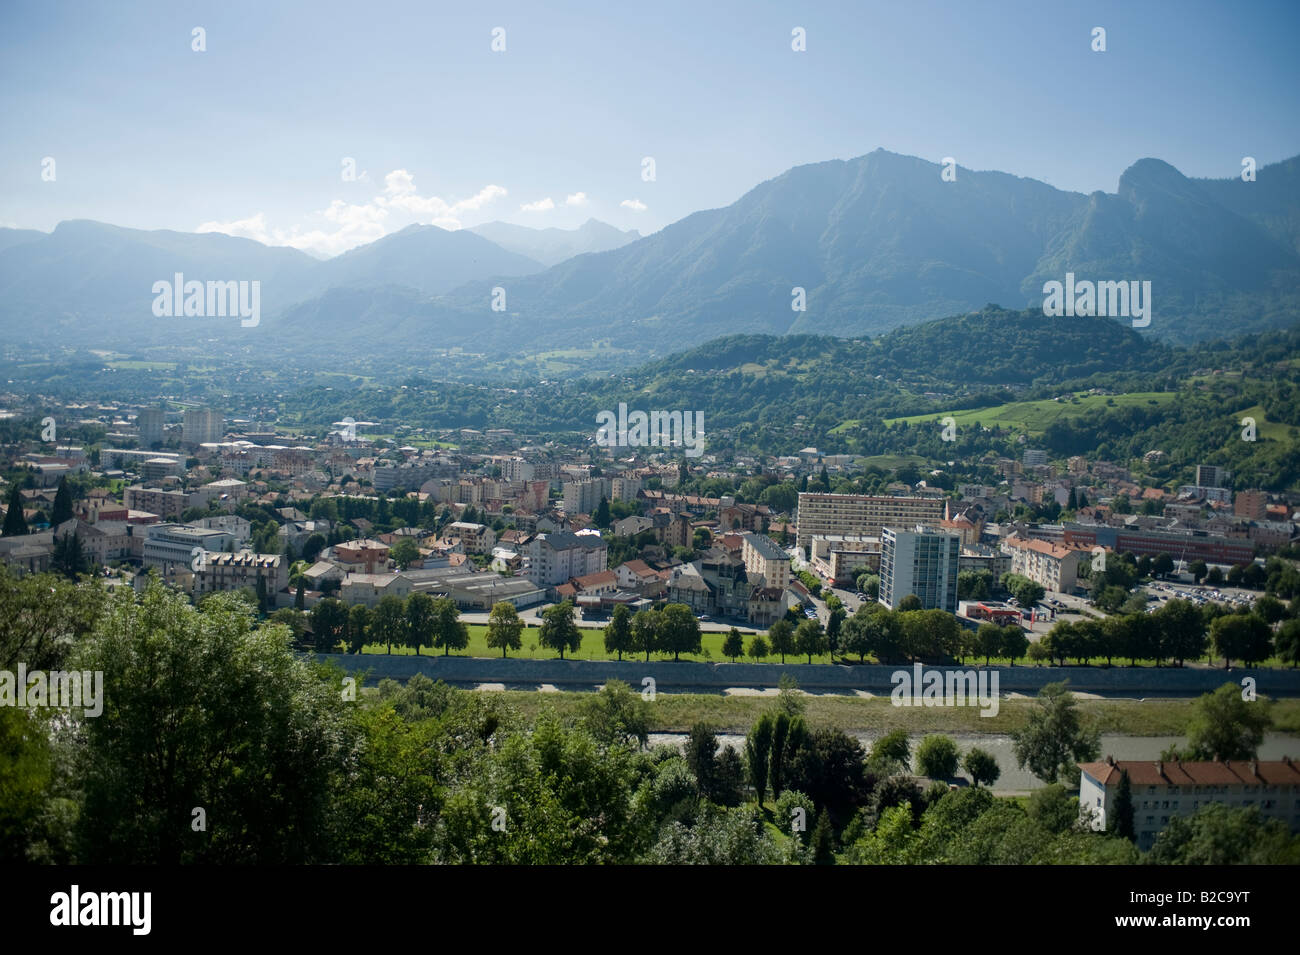 summer-view-of-the-city-of-albertville-i